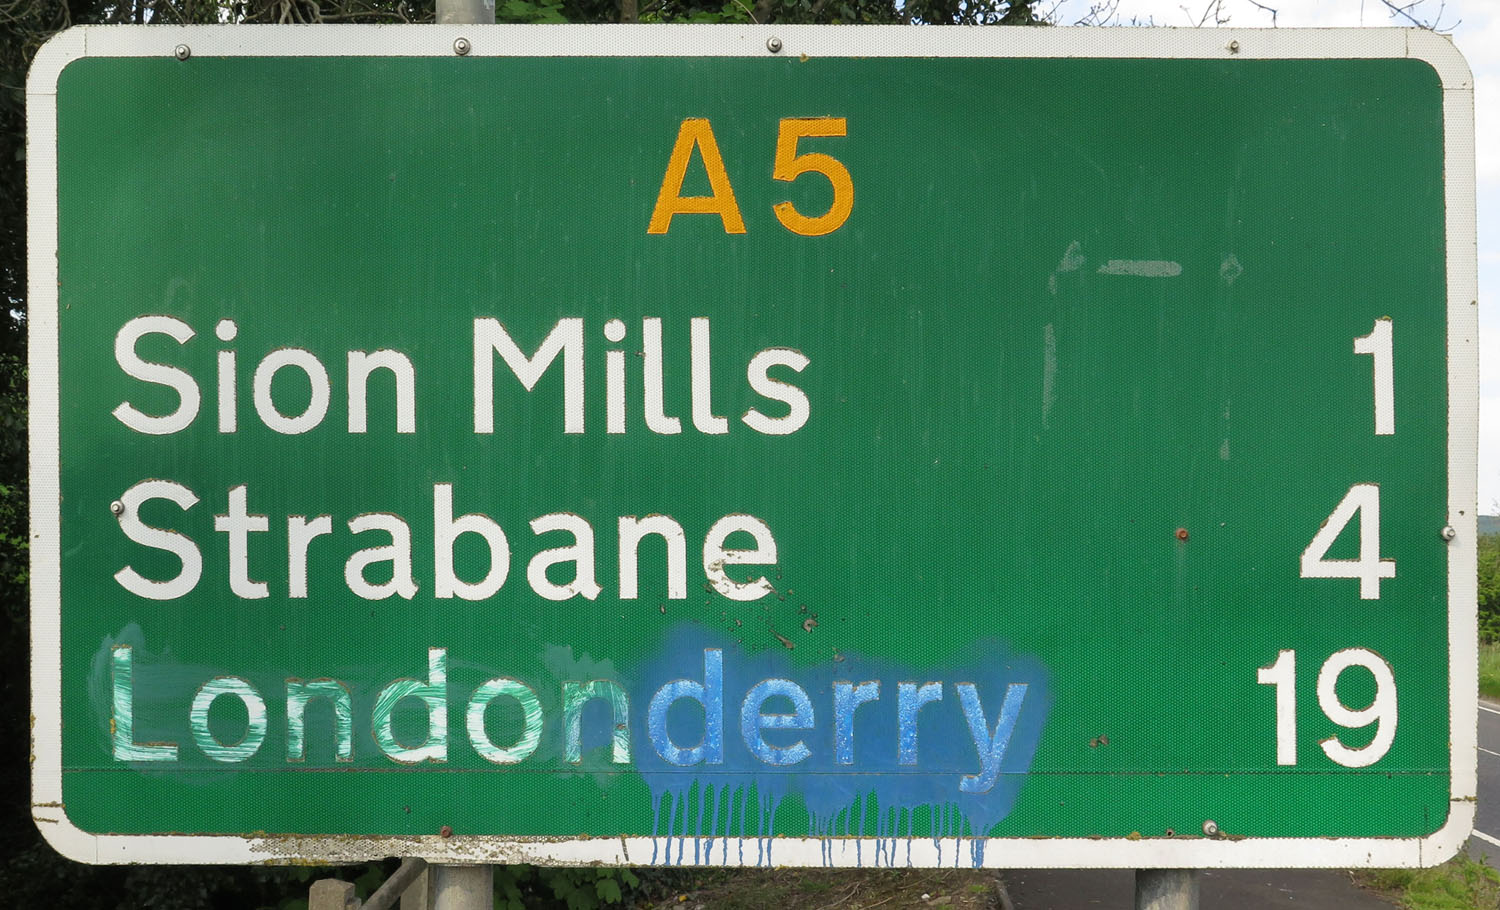 Northern-Ireland-Derry-Londonderry-Road-Sign-In-Northern-Ireland